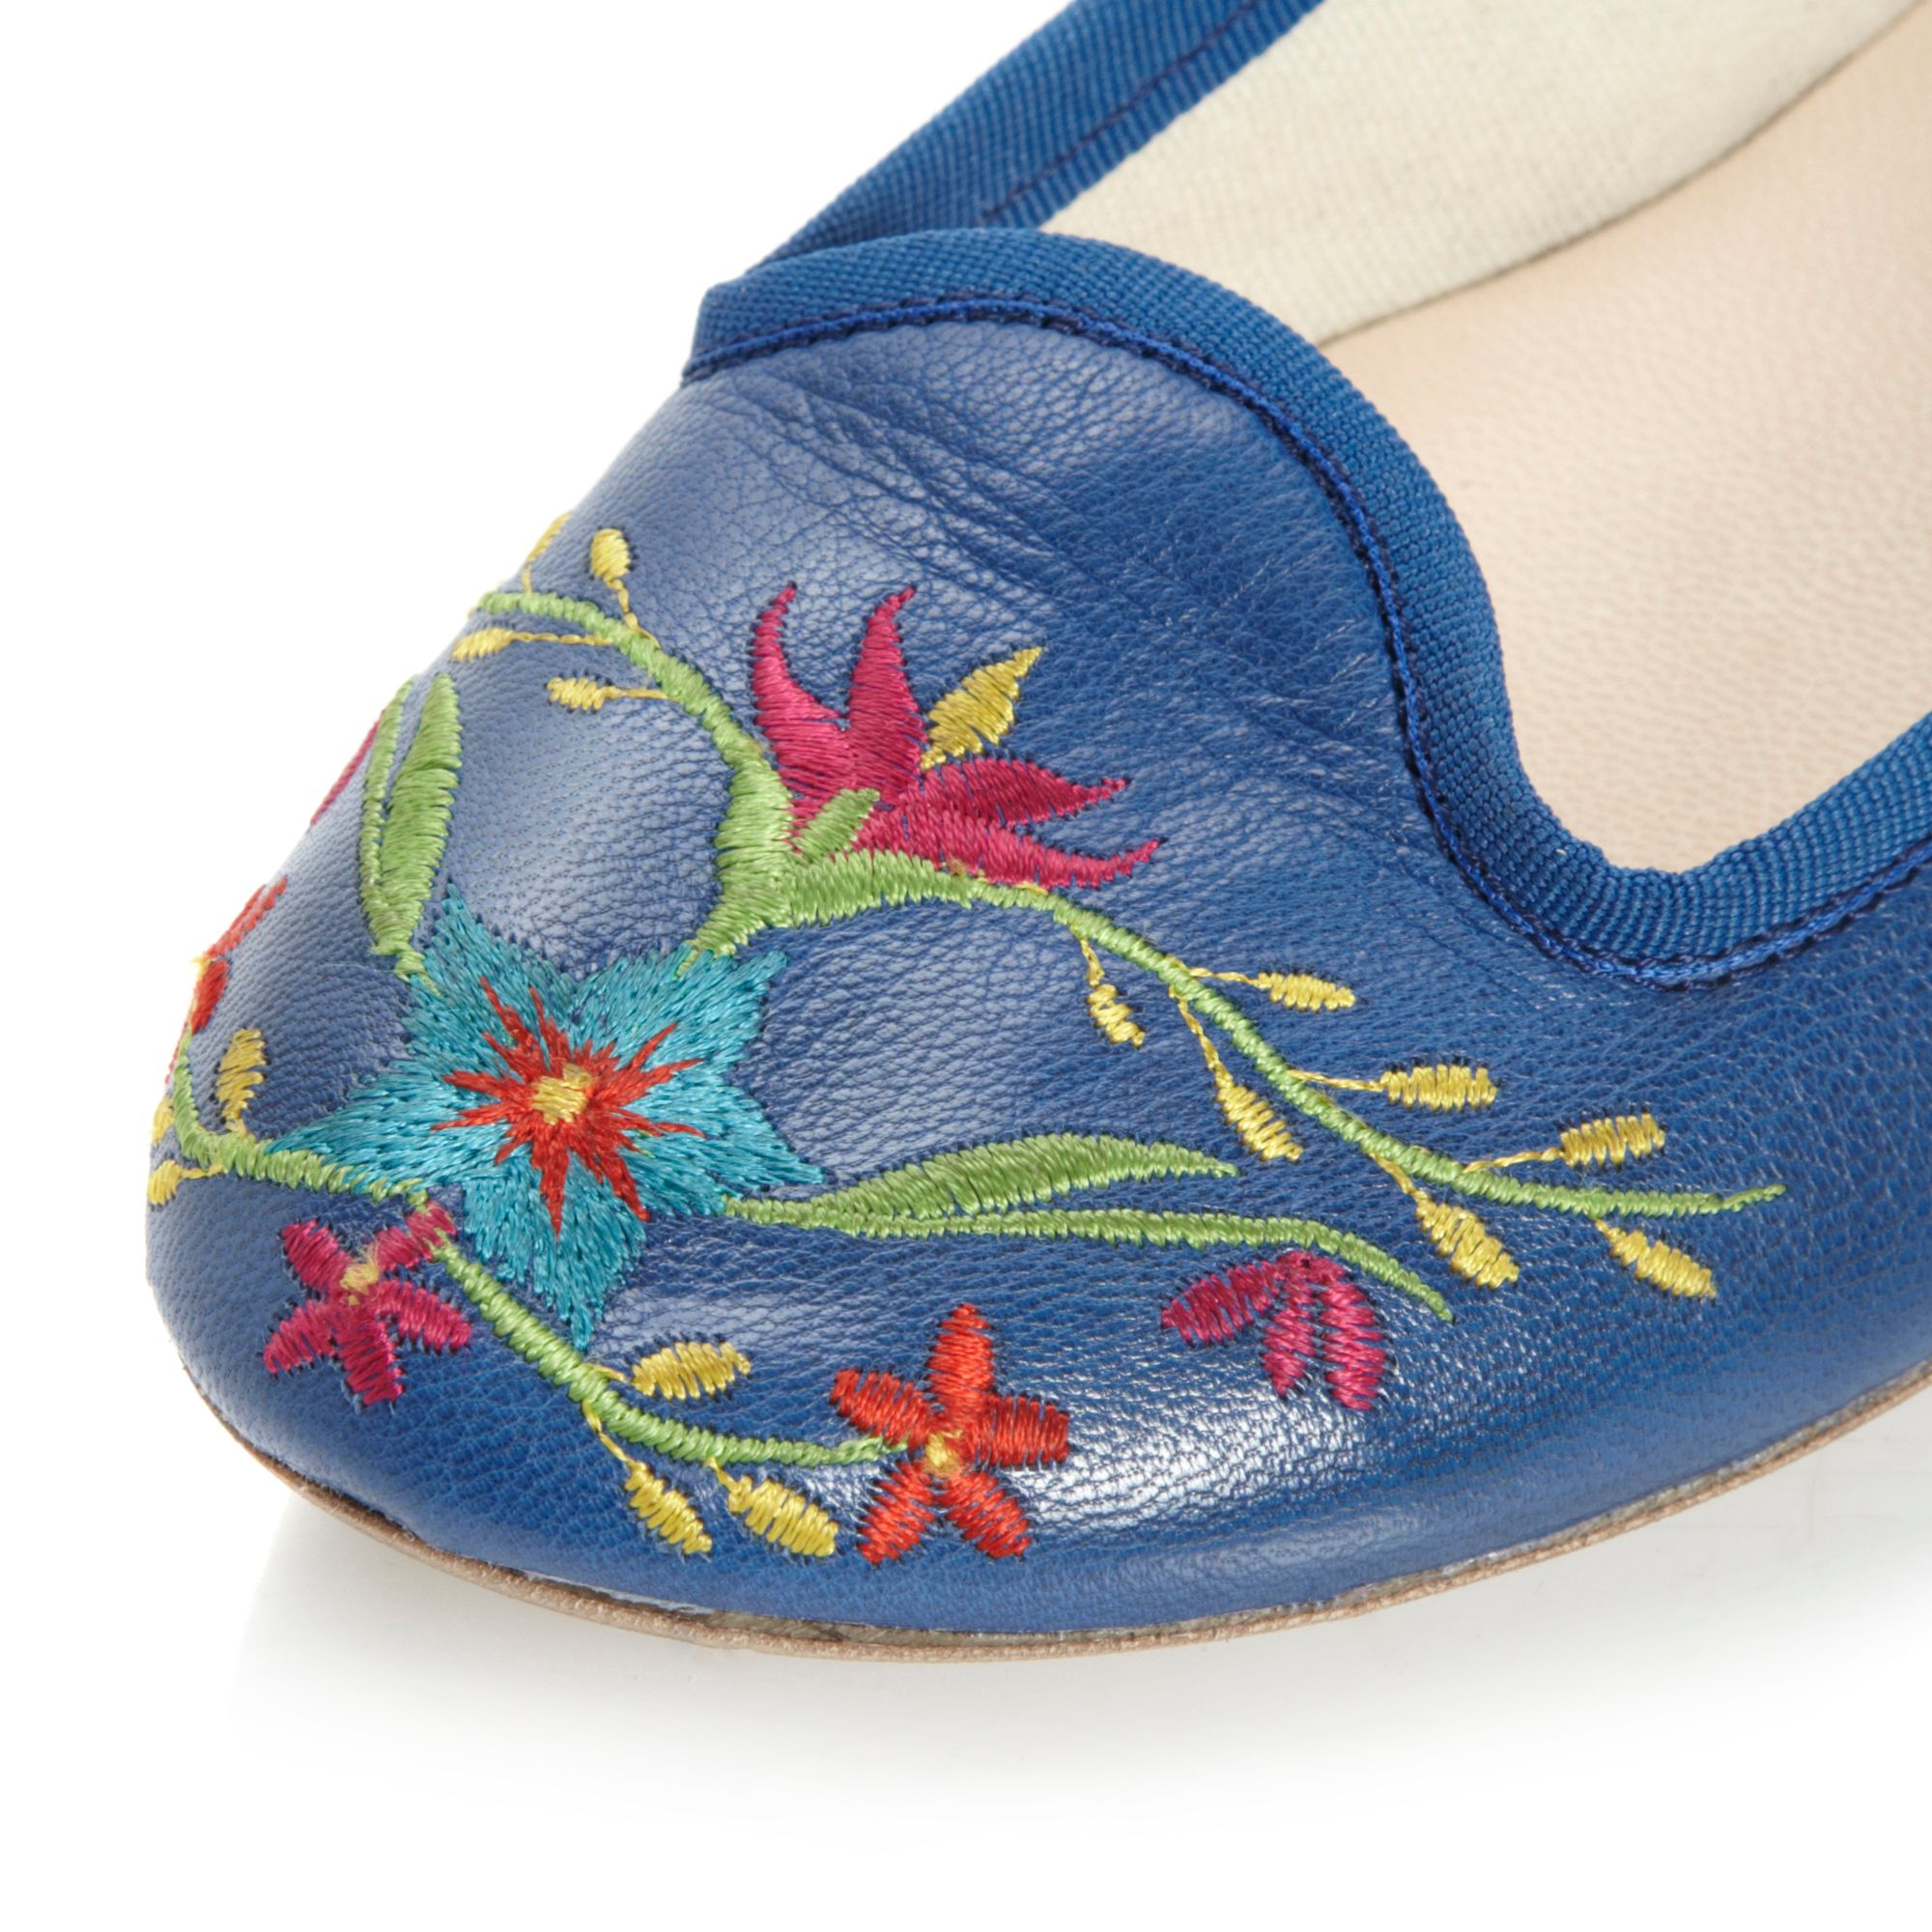 40e51b945 Dune Lolapine Embroidery Slipper Cut Loafer Shoes in Blue - Lyst